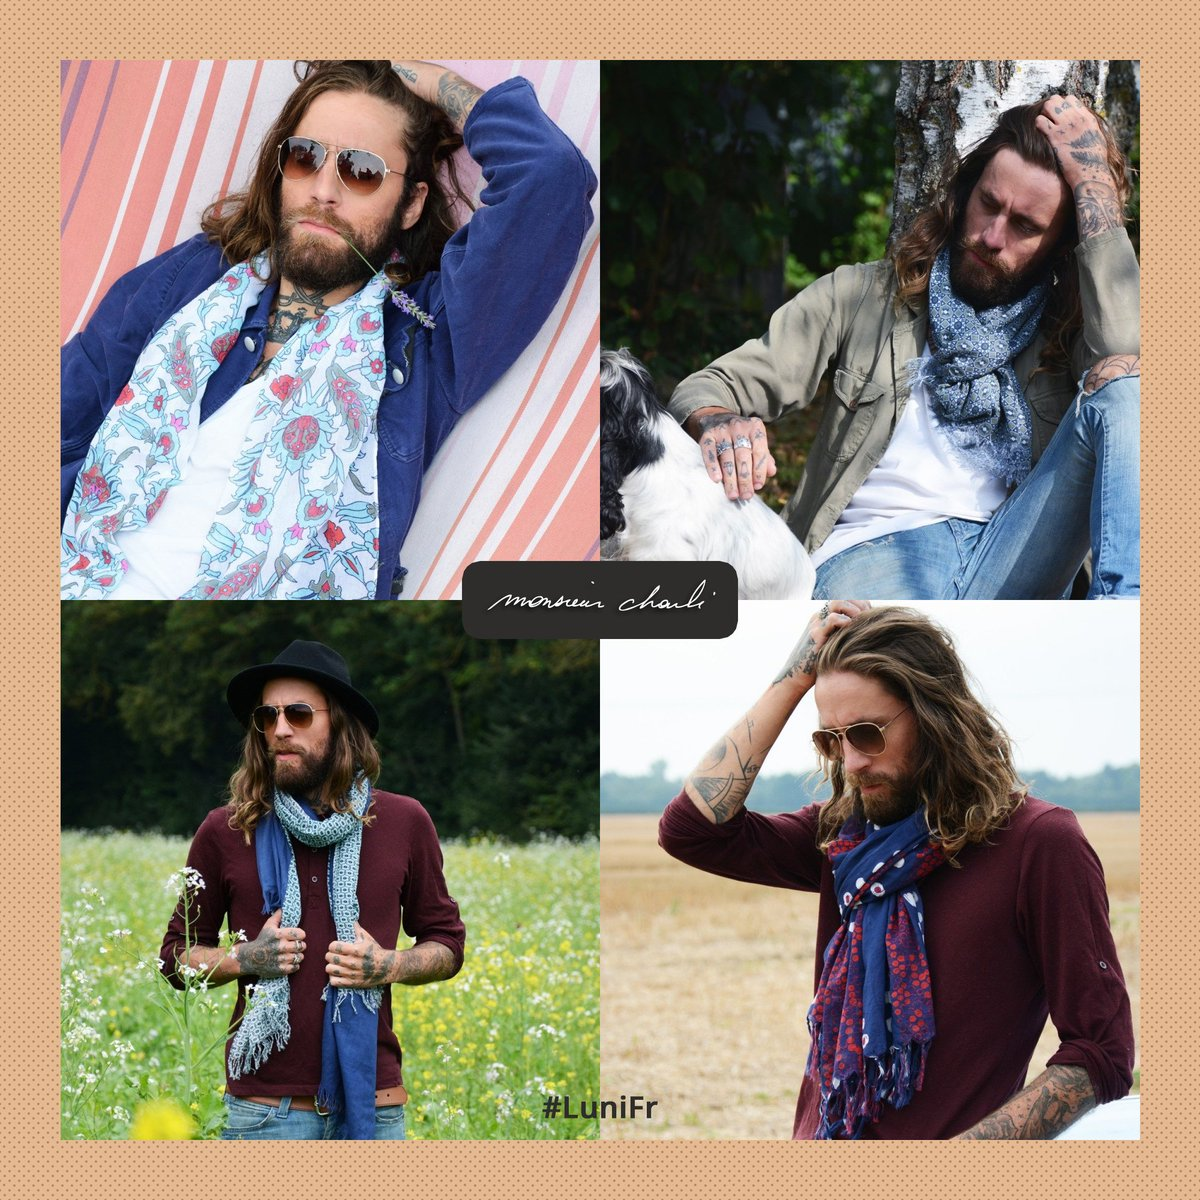 Nouvelle collection Monsieur Charli !   http:// luni.fr/createurs/mons ieur-charli.html &nbsp; …  #homme #lunifr #accessoire #lookoftheday #luni #new #tendance #menscarf<br>http://pic.twitter.com/IdAGqN4JQ2